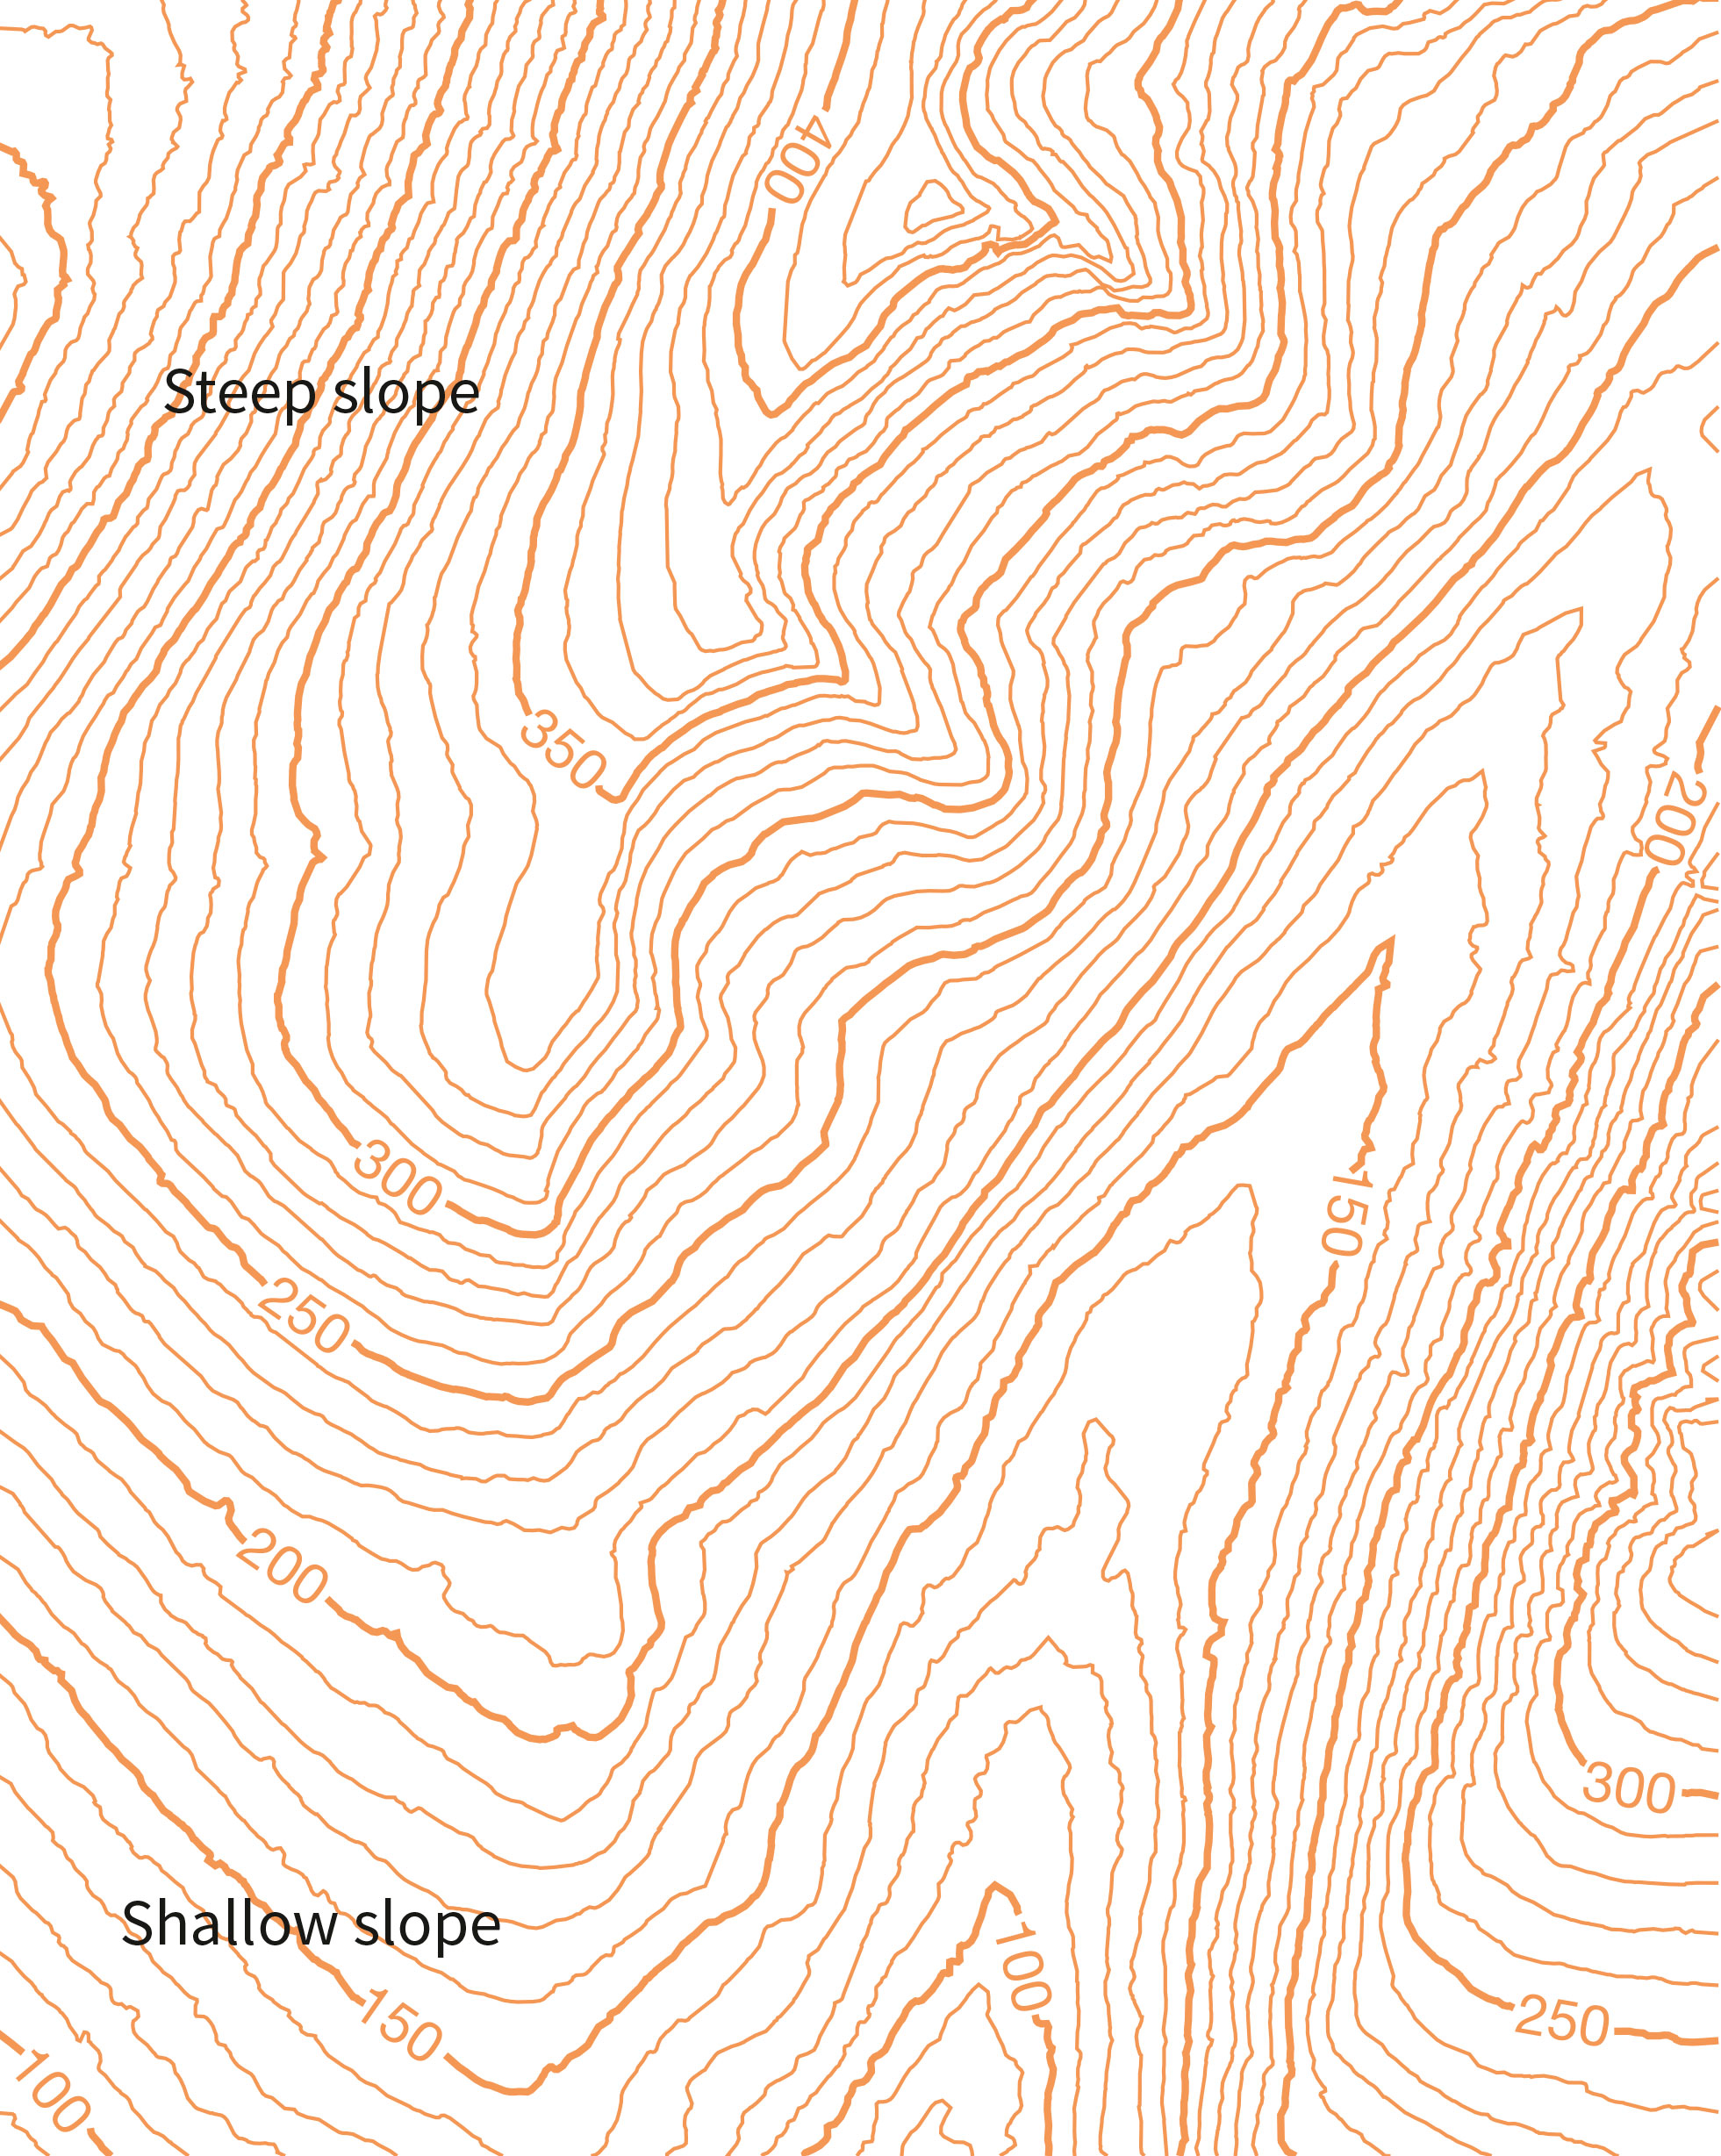 How To Label Contour Lines On A Topographic Map